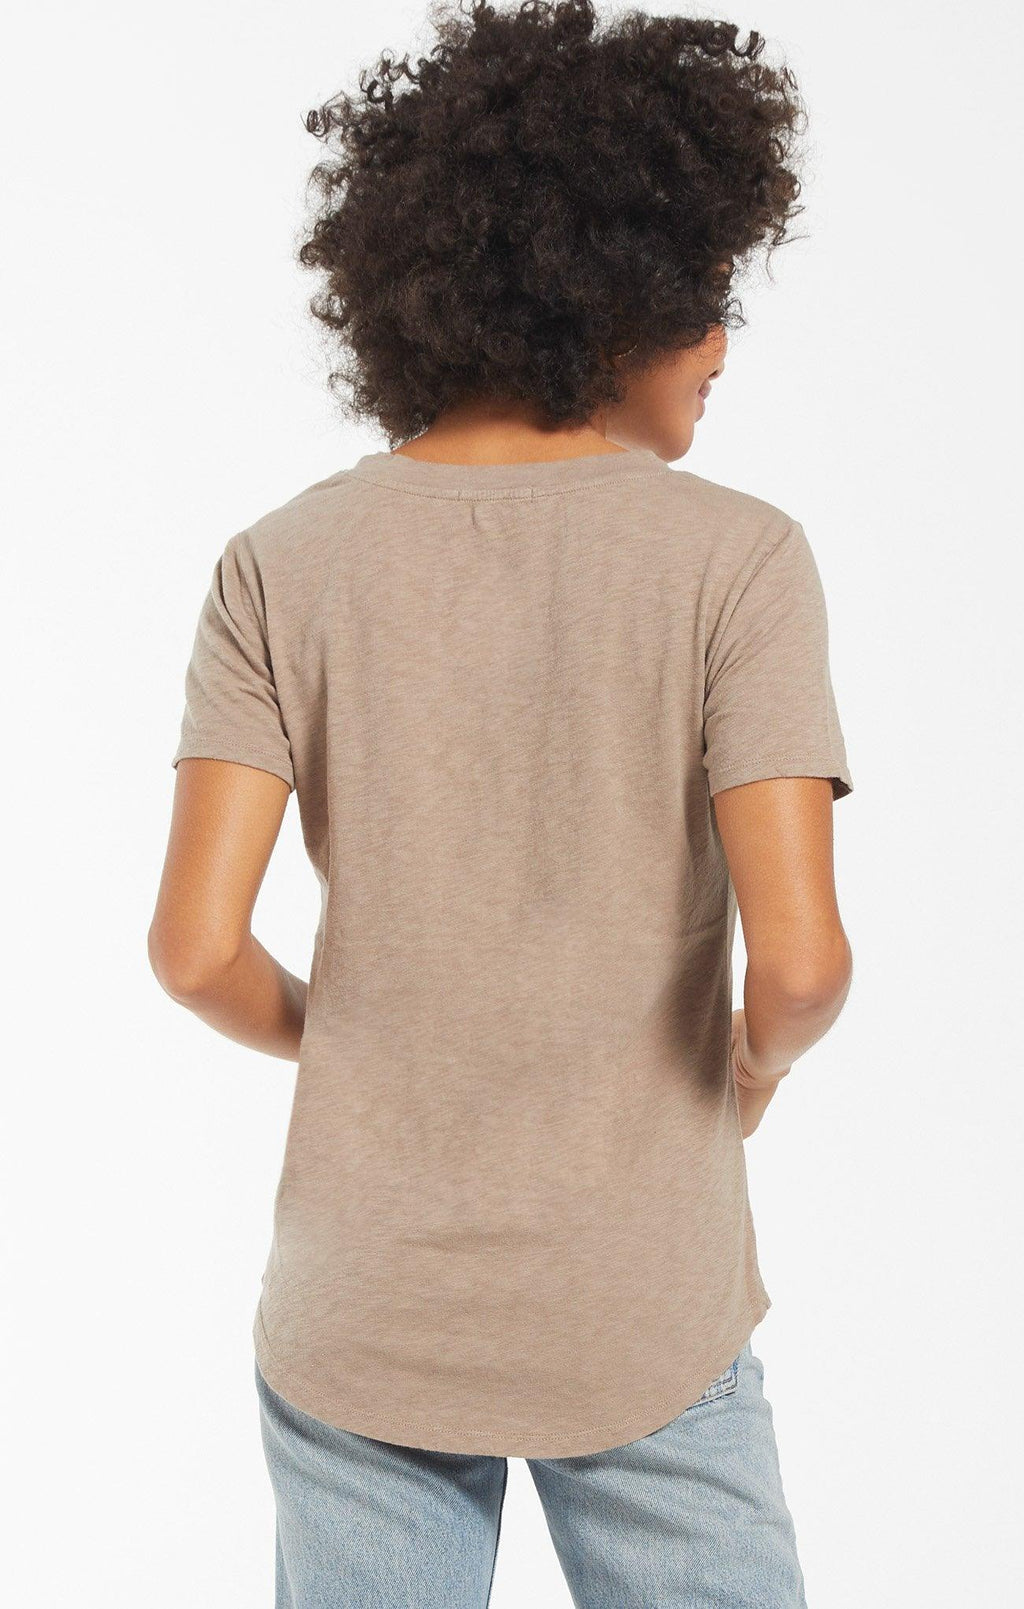 Z Supply Cotton Slub Pocket tee - Taupe